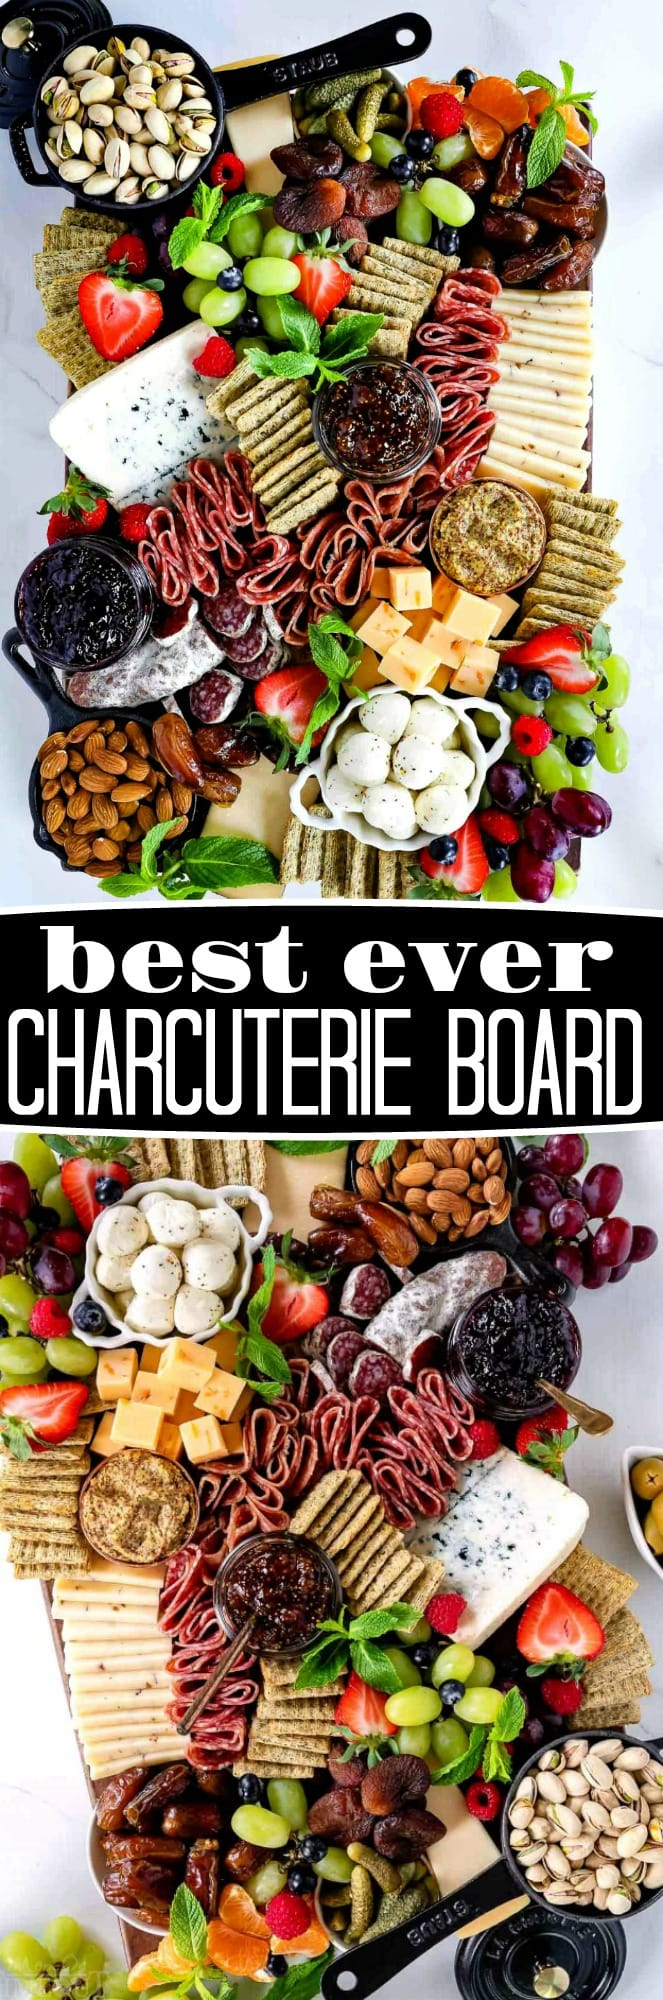 charcuterie-board-collage